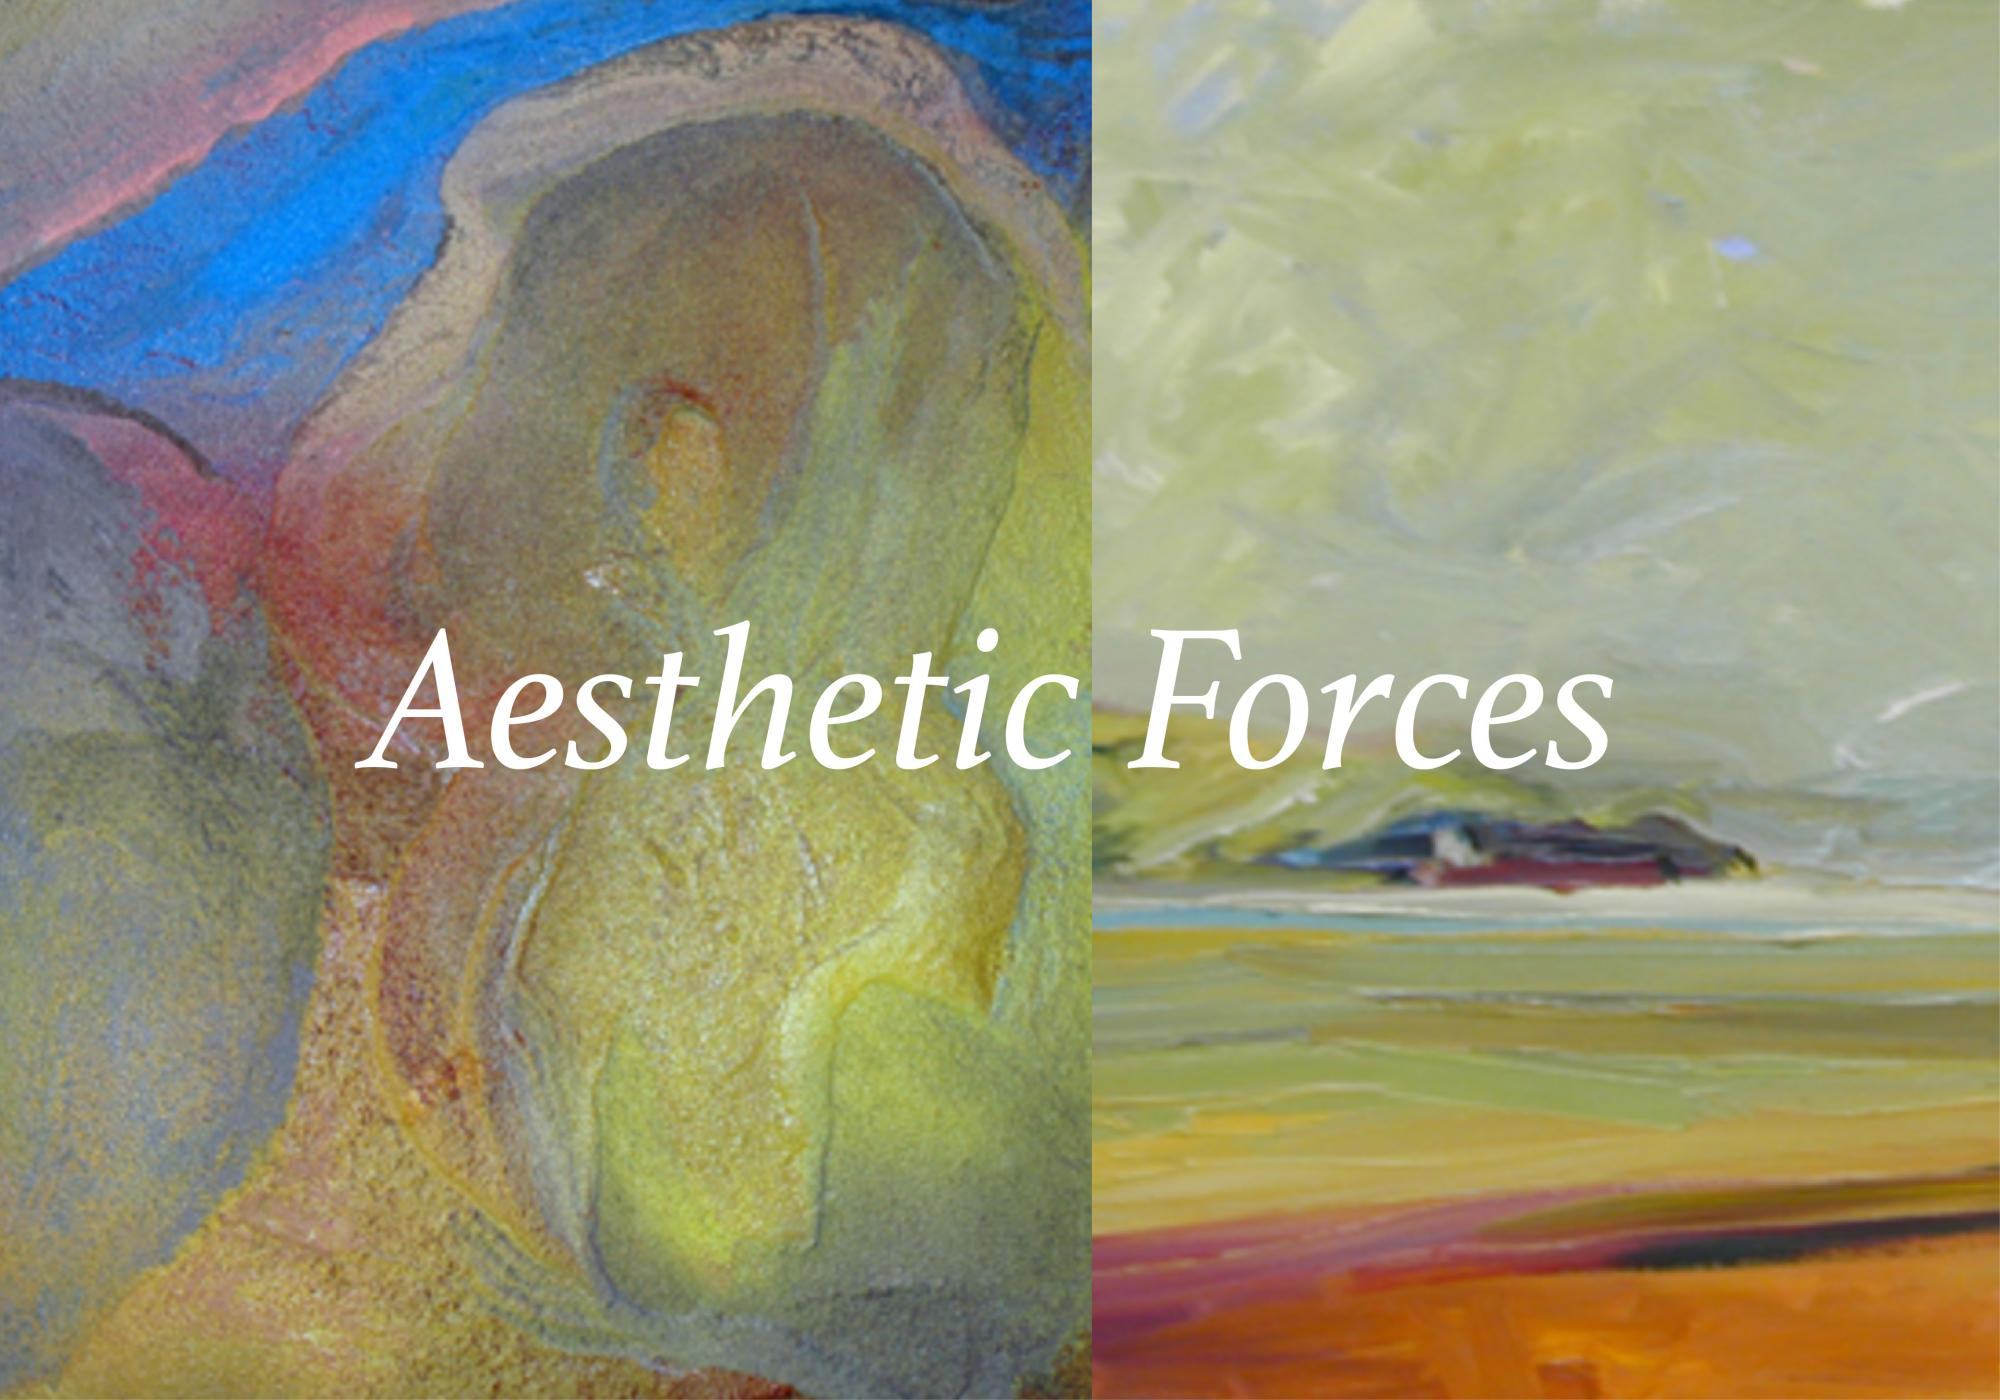 Aesthetic Forces